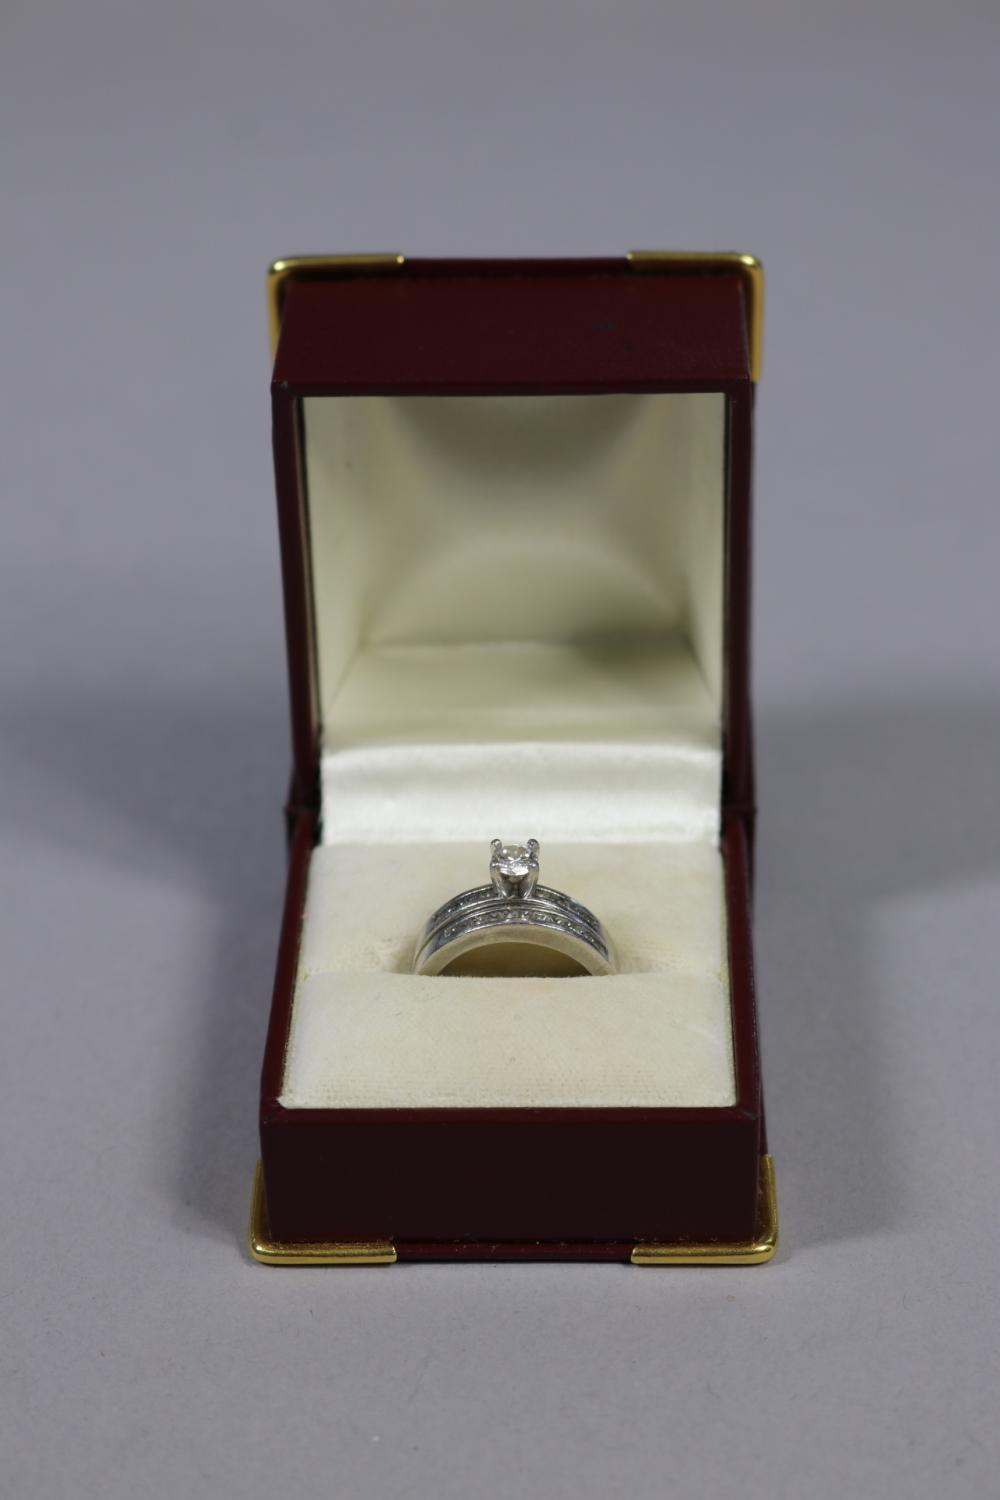 Wedding set, 18ct white gold solitaire diamond engagement ring, with 10 shoulder diamonds along with the matching 18ct white gold wedding ring with 12 diamonds (2)